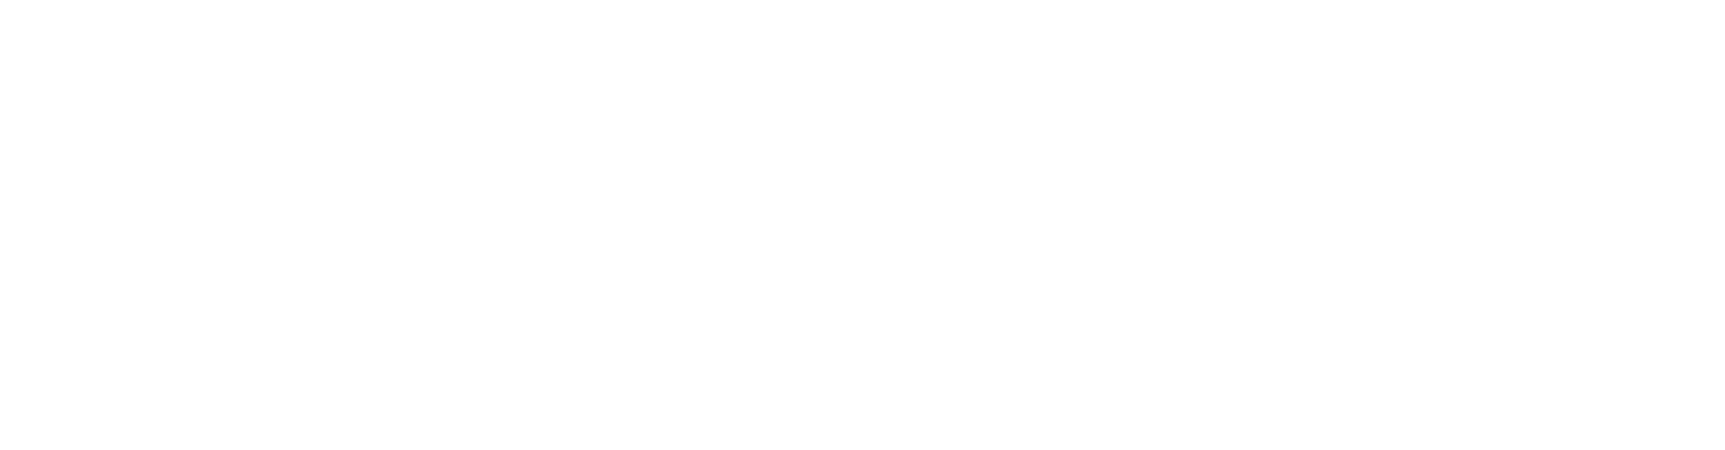 American Kidney Fund   Fighting on All Fronts